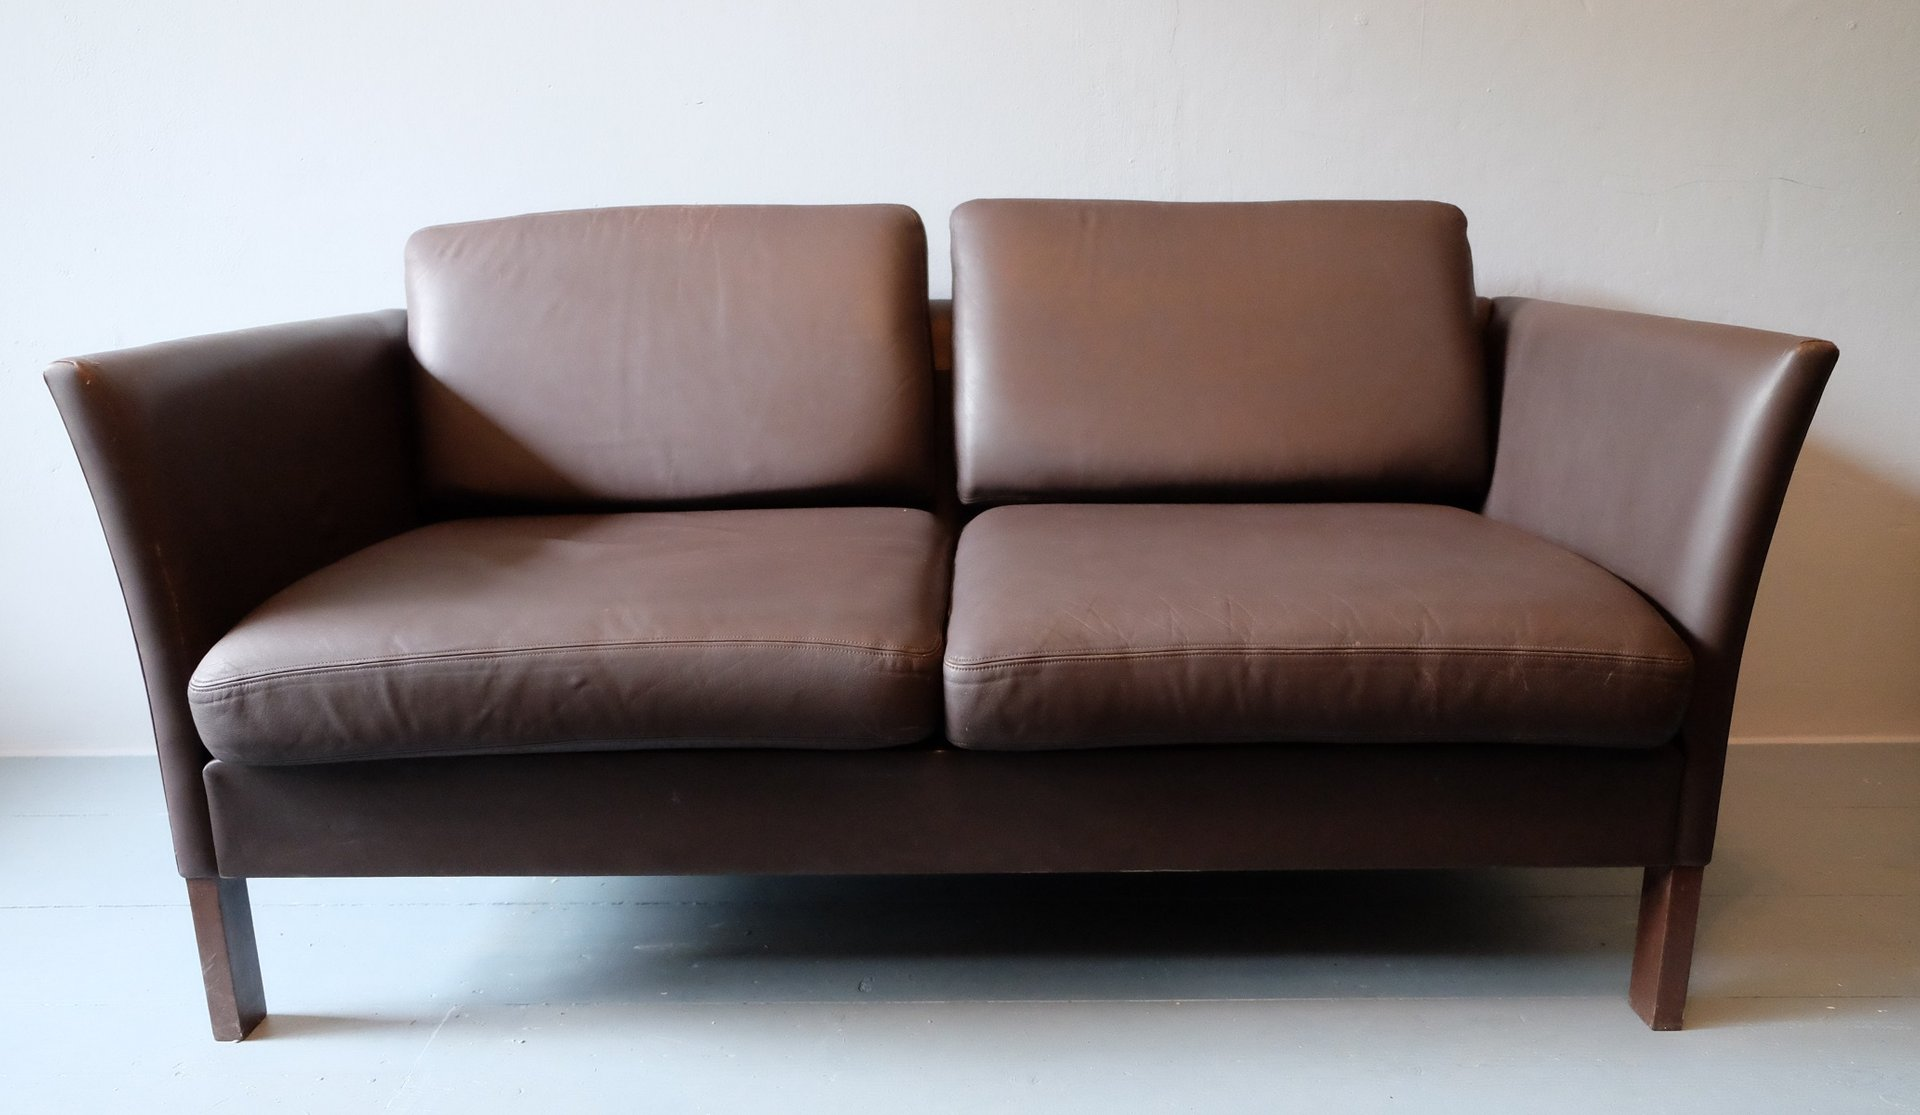 danish leather sofa loveseat 1970s for sale at pamono. Black Bedroom Furniture Sets. Home Design Ideas